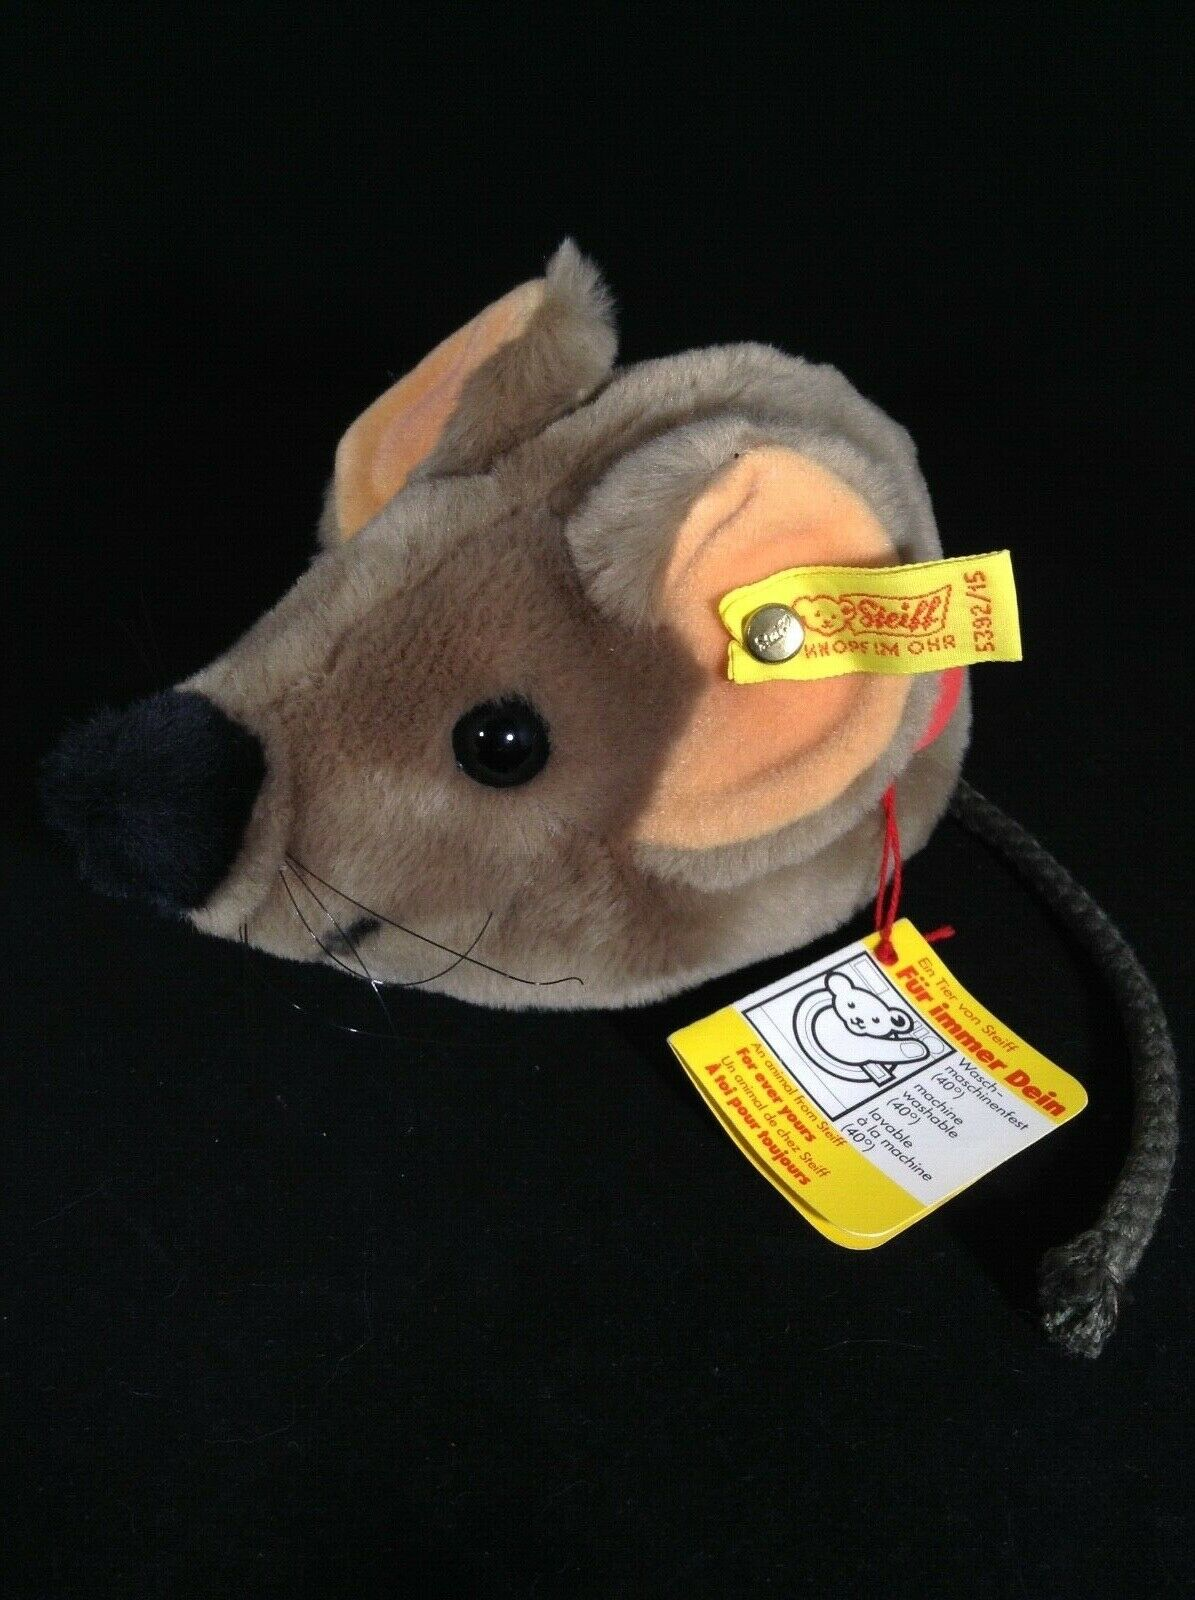 Vintage Steiff 6.5  Cosy Fiep Mouse with Tags - 5392 15 - Great Condition - RARE